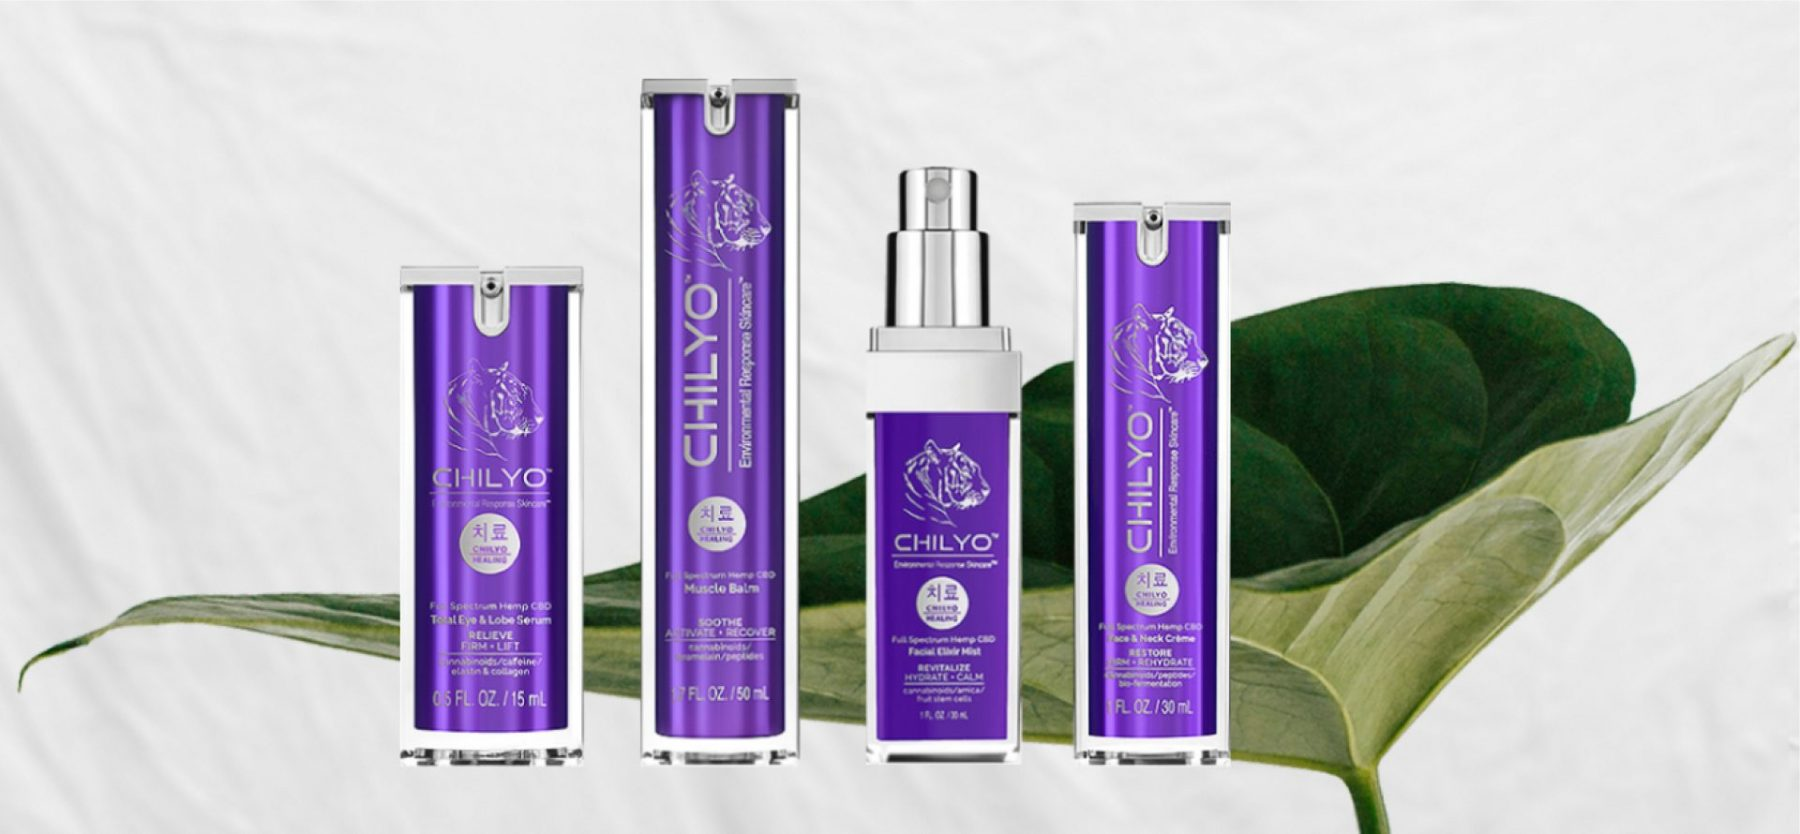 Actor Shedrack Anderson is Breaking into the Skincare Field with CBD Products